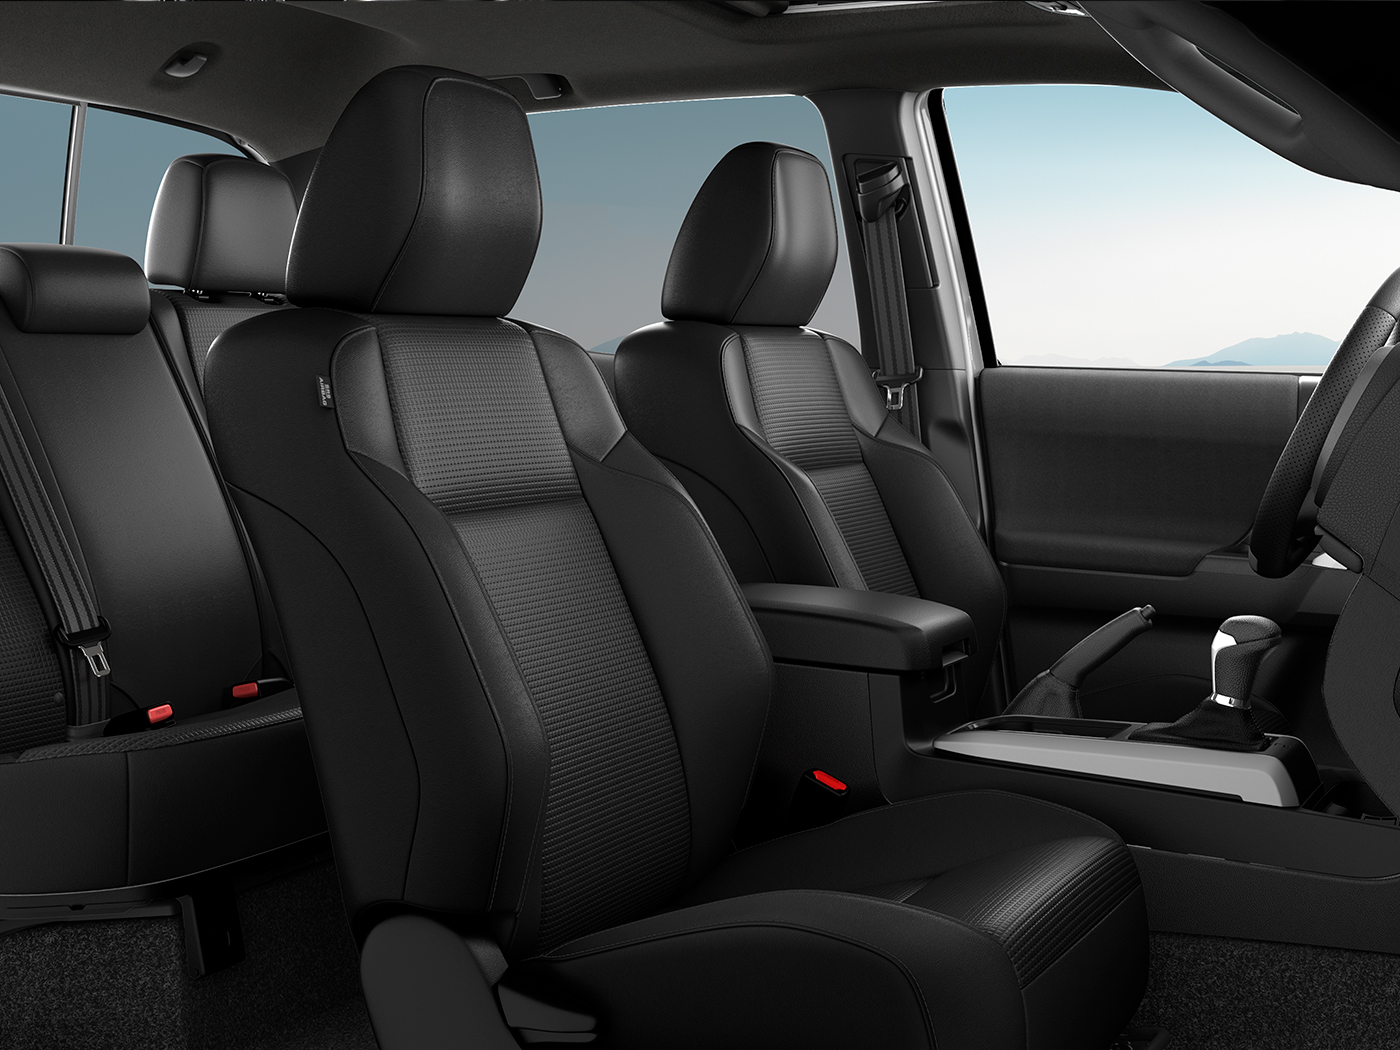 Model Features of the 2020 Toyota Tacoma at Tri County Toyota in Royersford | The leather seats of the 2020 Tacoma